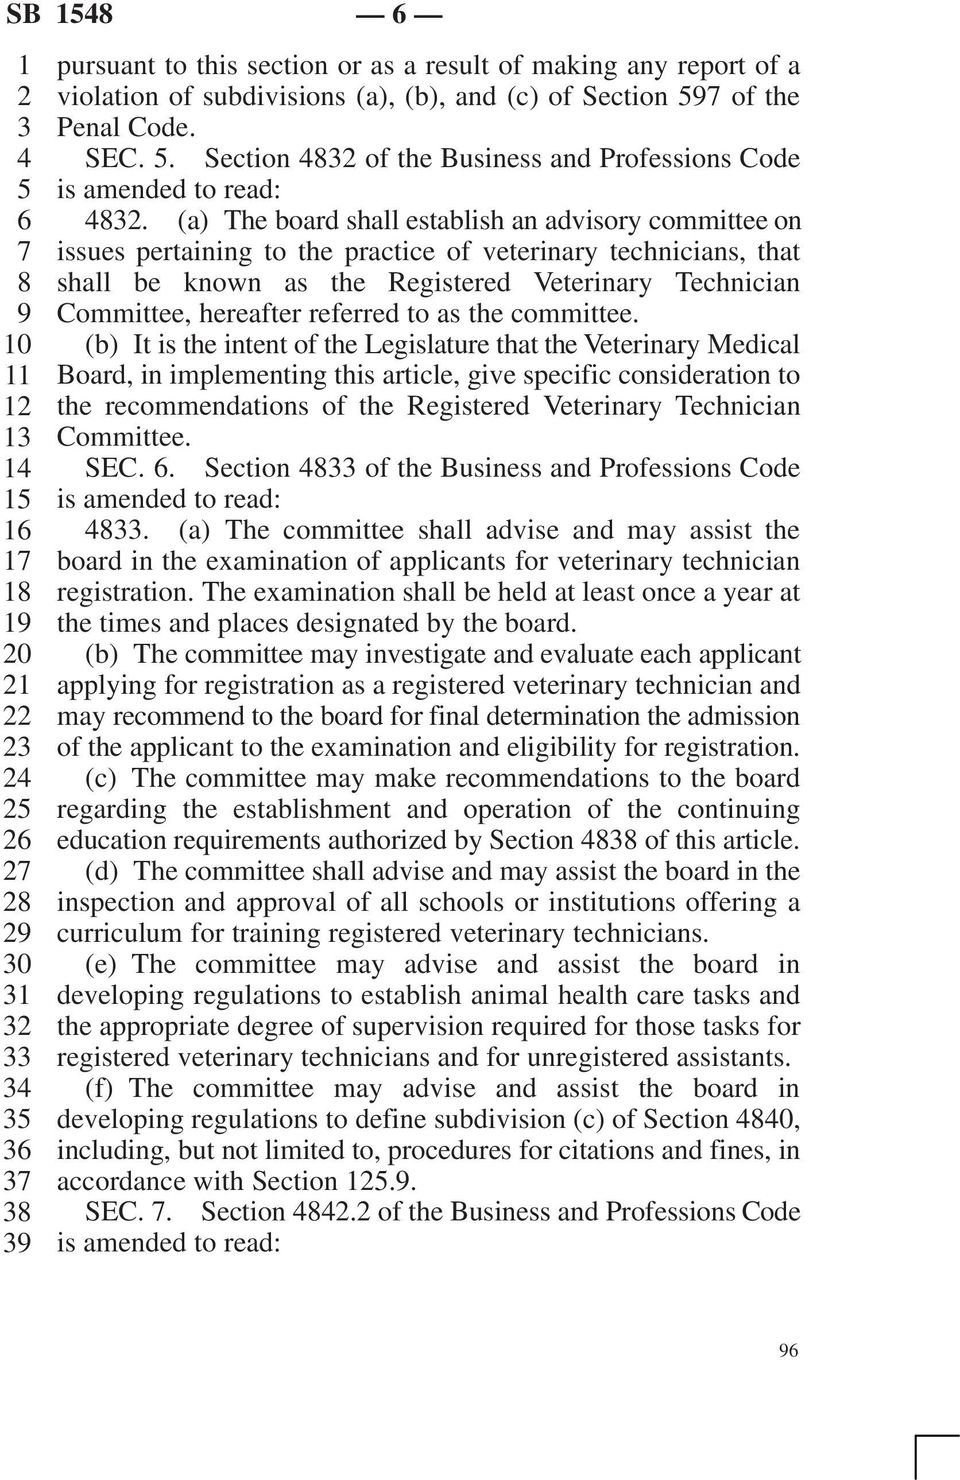 (a) The board shall establish an advisory committee on issues pertaining to the practice of veterinary technicians, that shall be known as the Registered Veterinary Technician Committee, hereafter